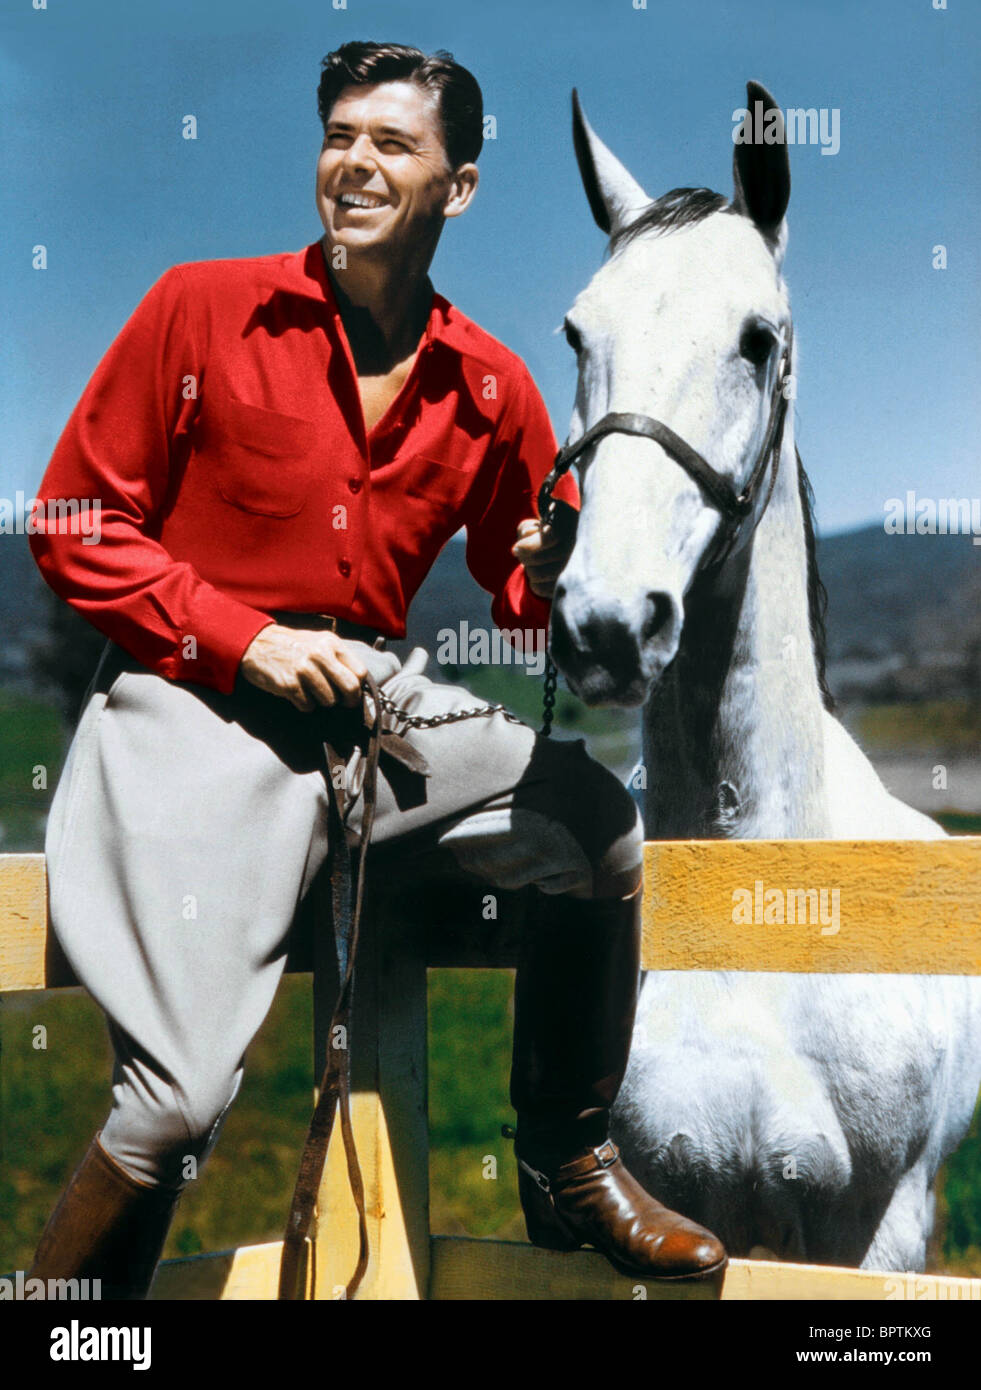 RONALD REAGAN WITH HORSE ON RANCH (1951) - Stock Image